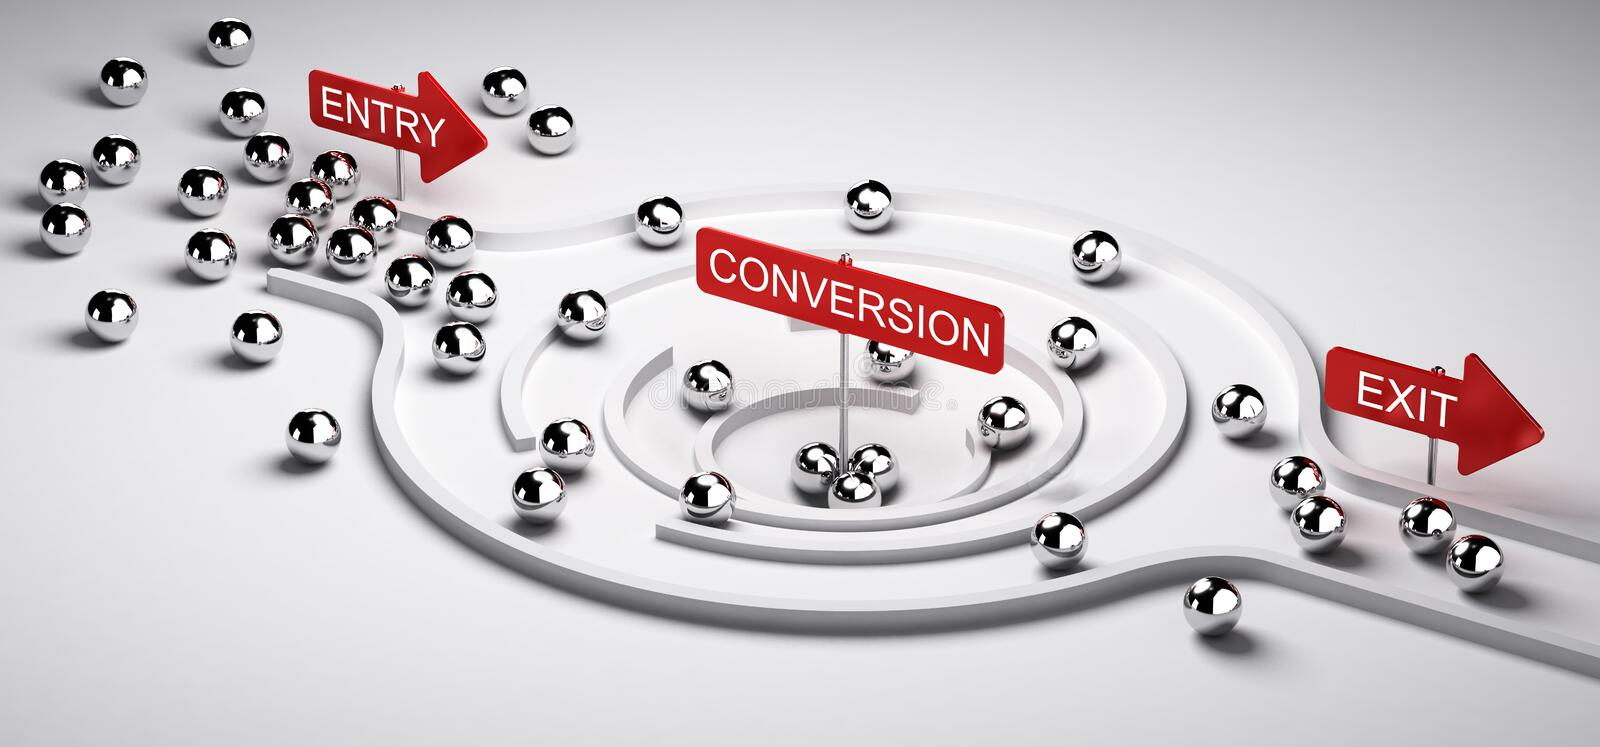 Marketing Conversion Funnel. 3D illustration of a conversion funnel with entry and exit, Business or Marketing concept of leads to sales ratio, horizontal image vector illustration